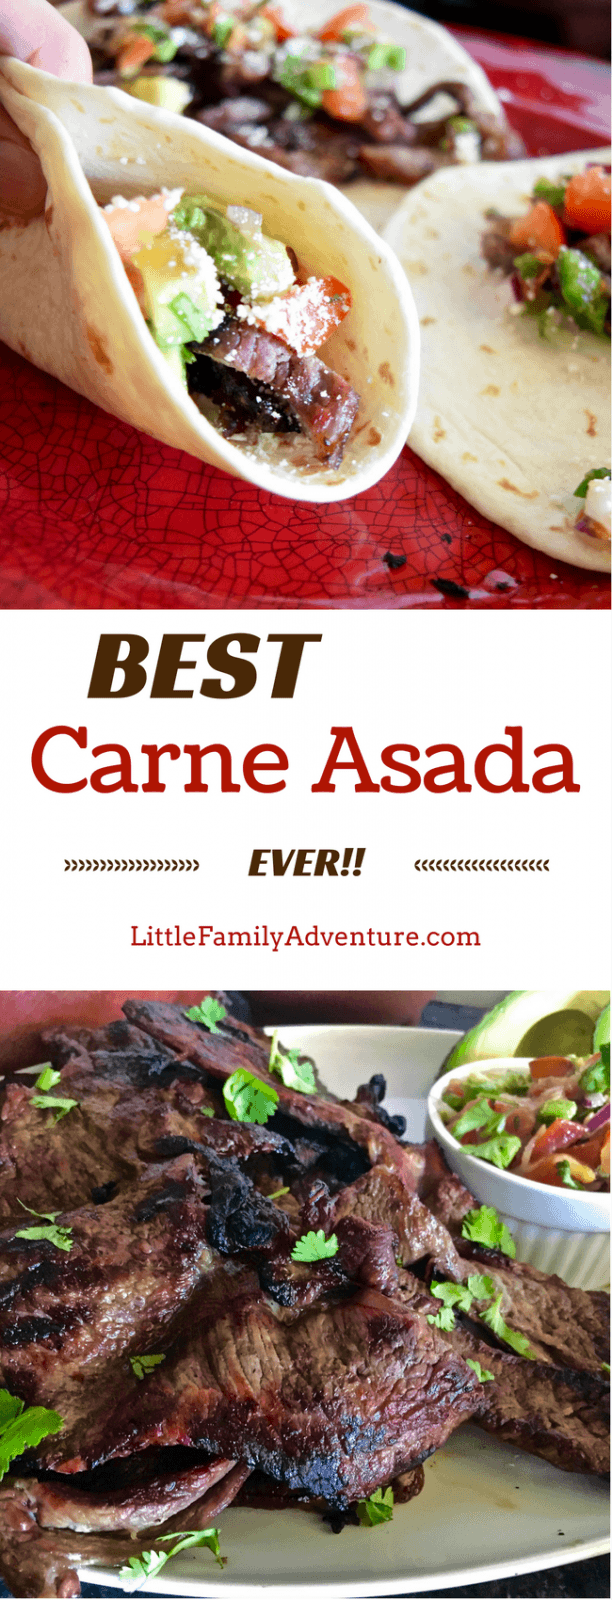 Looking for a quick and easy grilled carne asada recipe? Try the Best Carne Asada Recipe Ever! Restaurant quality carne asada perfect for tacos, burritos, nachos, salads, etc. fabulous for family dinner or for crowds! It's so easy that you'll never bother with Mexican take out again, plus with @ALDIUSA it's at a fraction of the price!#carneasada #grill #Mexican #ad